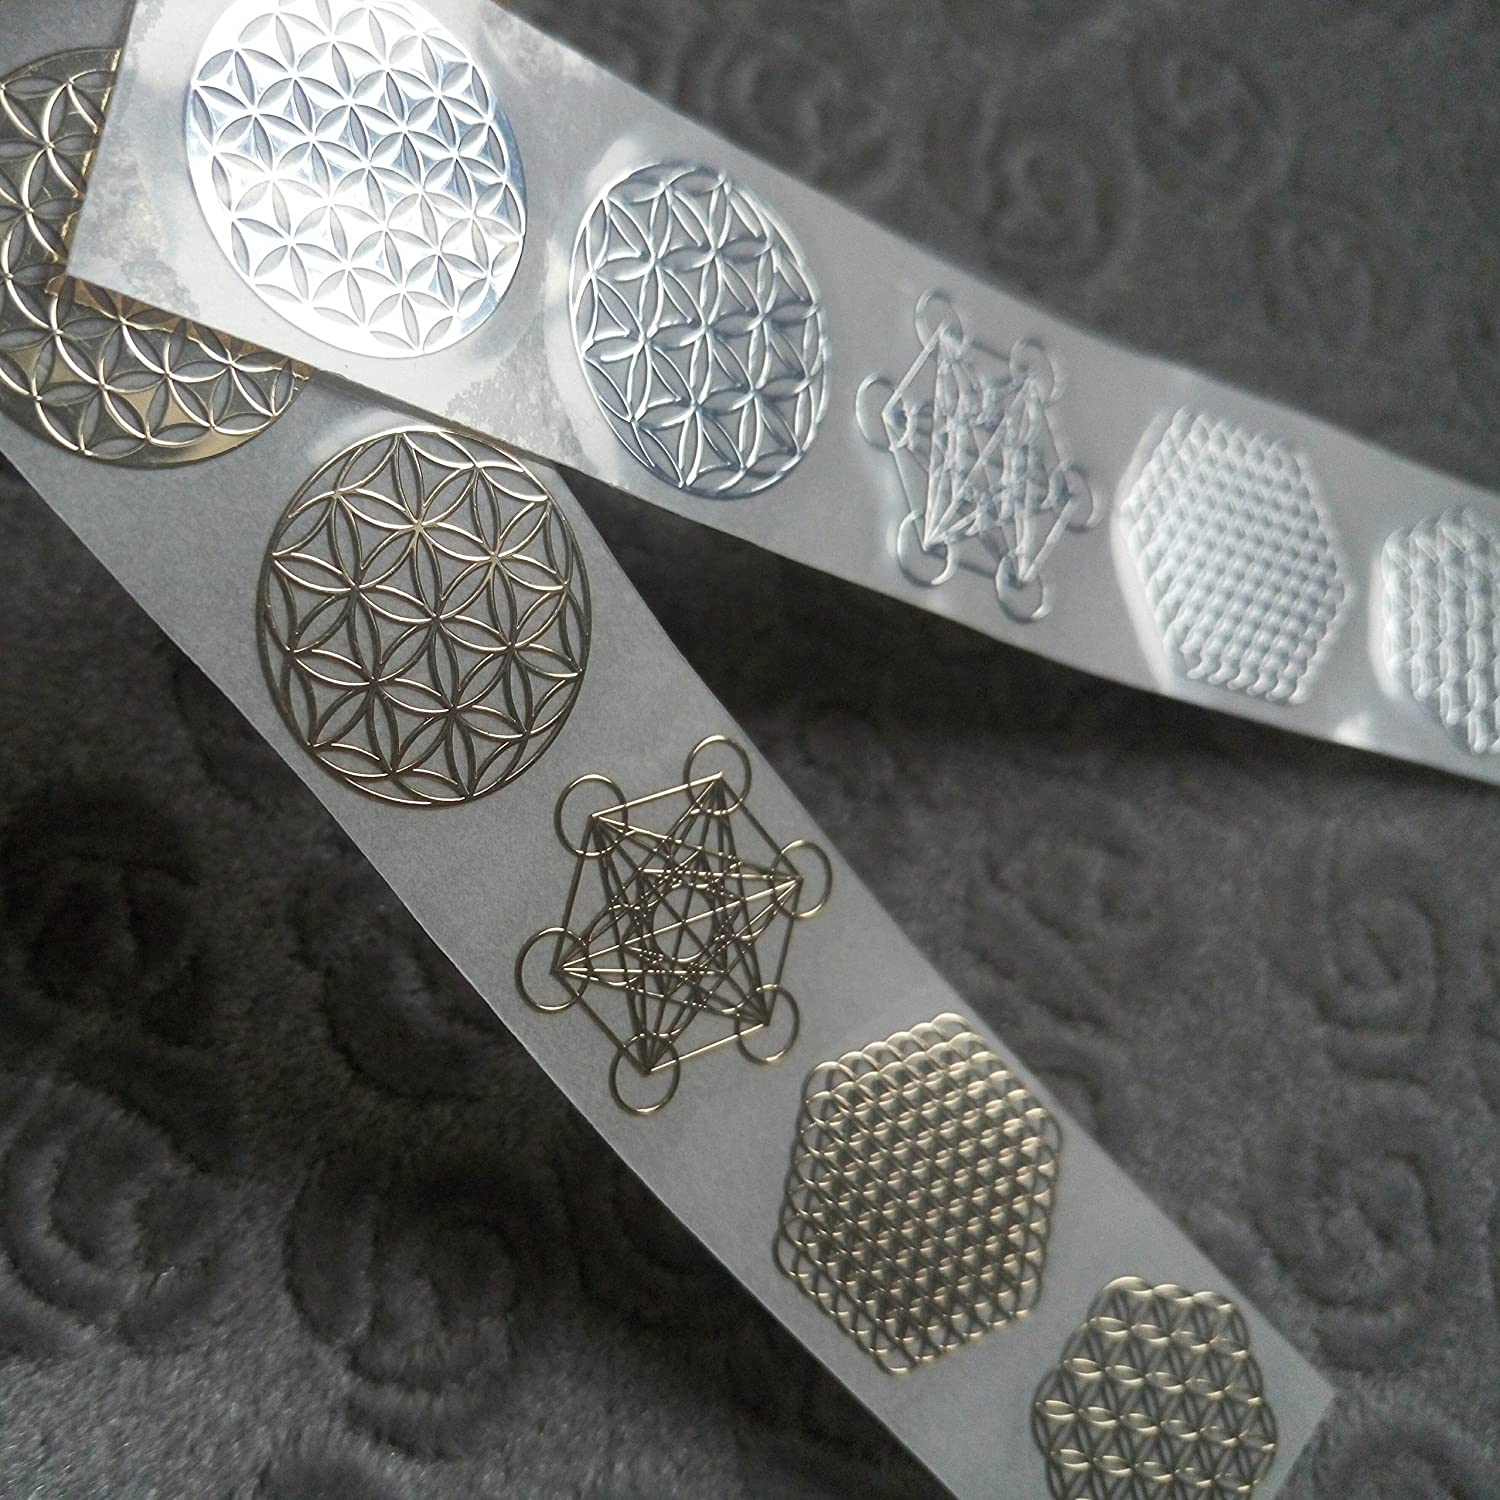 MetalArtern Flower of Life Gold and Chrome Silver Small Metal Sticker for Mobile Phone DIY (Gold)